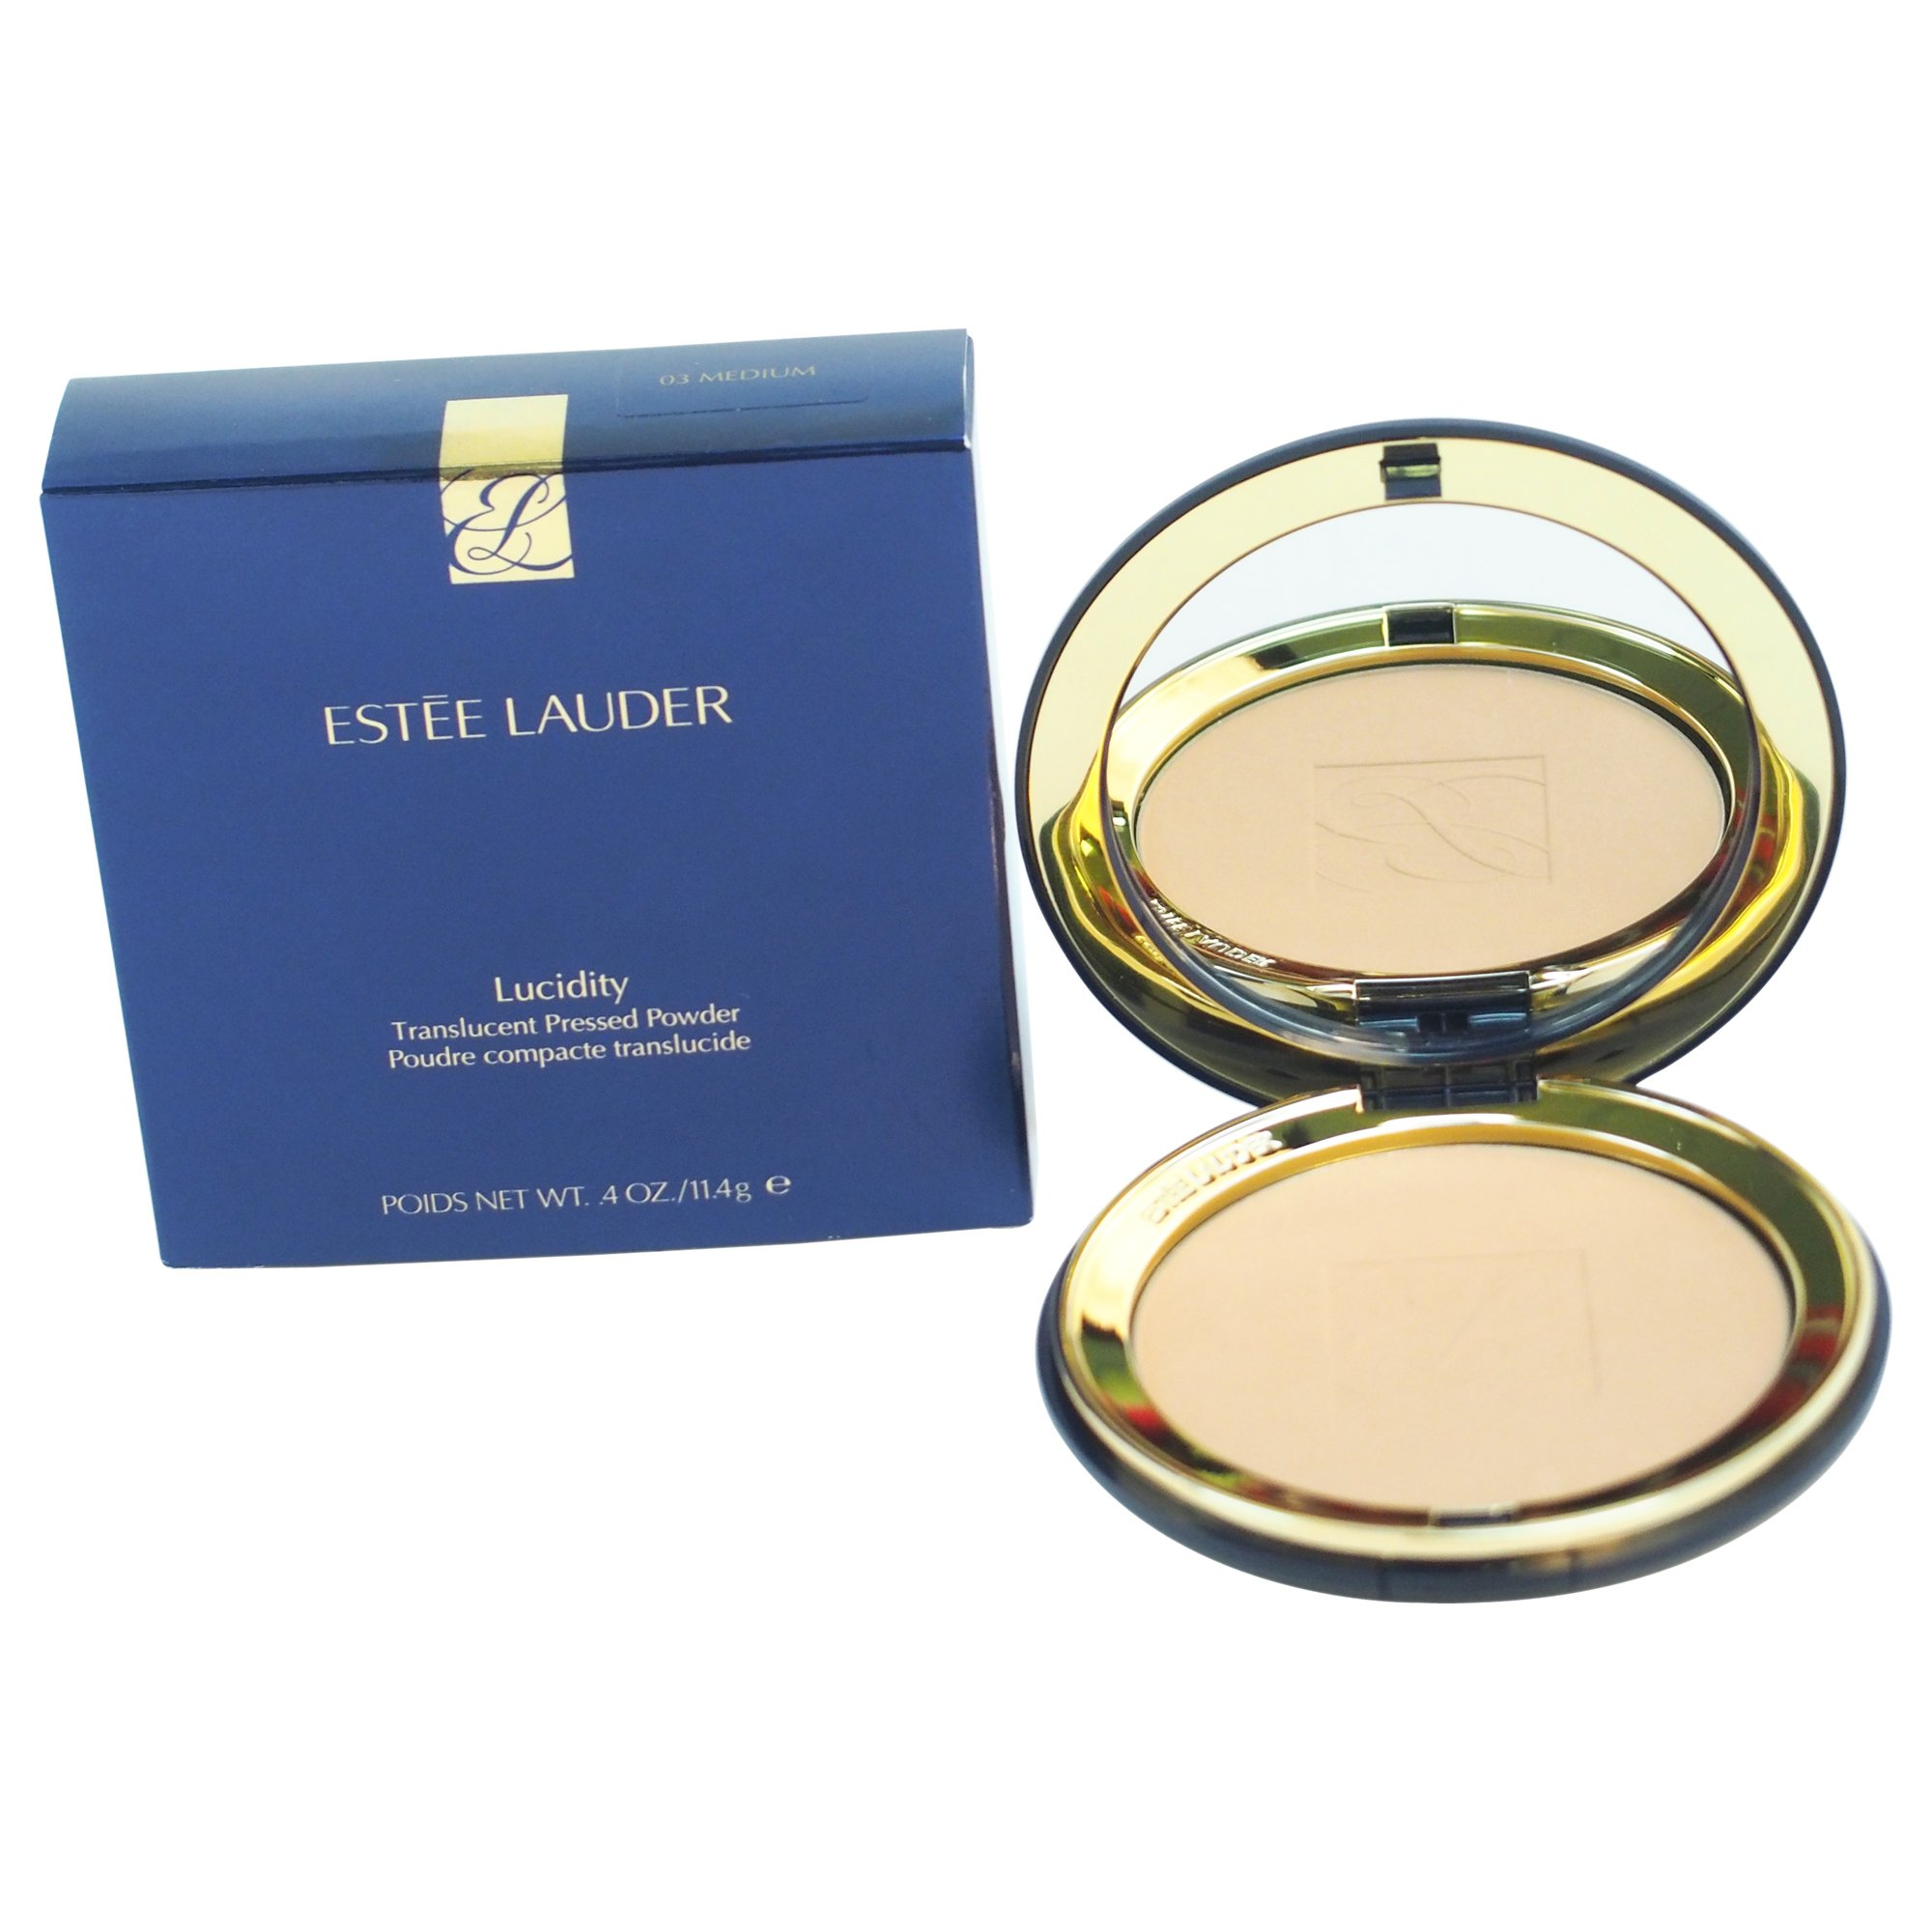 Estee Lauder Lucidity Translucent Pressed Powder for Normal Combination and Dry Skin, No. 03 Medium, 0.4 Ounce by Estee Lauder